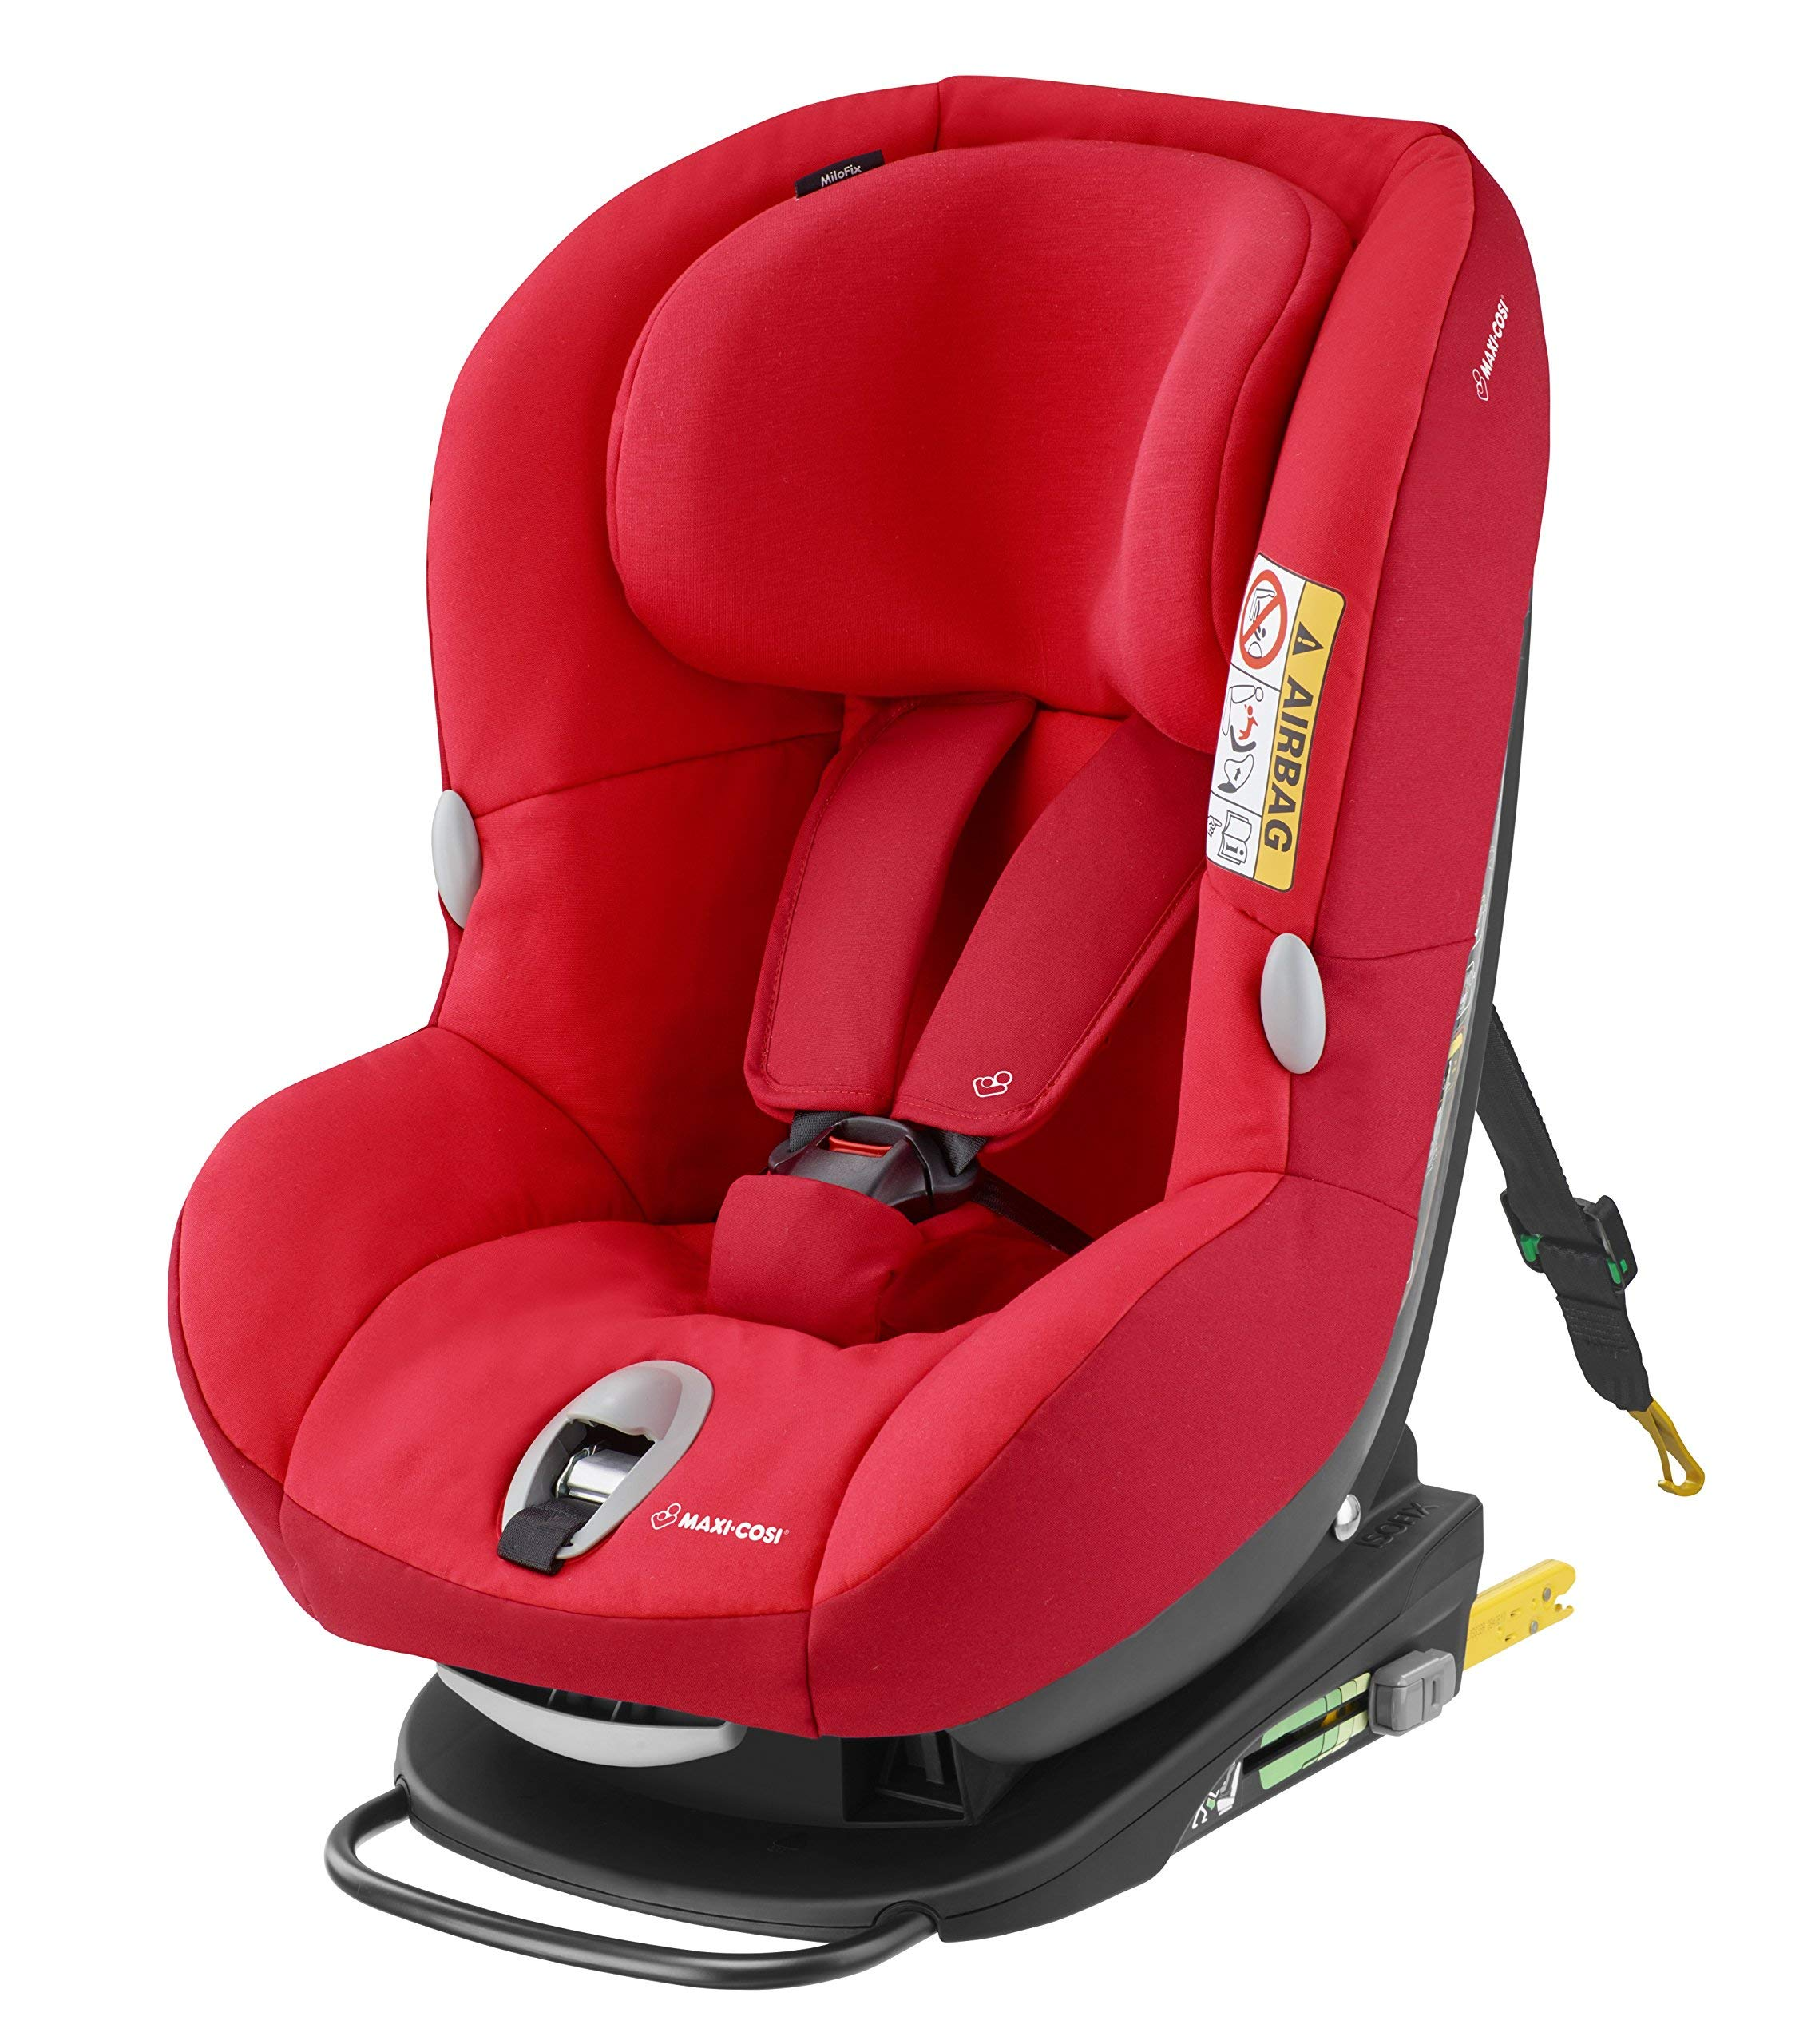 Maxi-Cosi MiloFix ISOFIX Combination Car Seat, Group 0+/1 car seat, Rear and Forward-facing, 0-4 years, 0-18 kg, Vivid Red Maxi-Cosi Rear and forward facing group 0+/1 car seat, suitable from birth to 18 kg (birth to 4 years) i-Size car seat, extended rearward-facing travel up until 18 months Padded seat and angled base provide additional leg room in rear-facing position 1